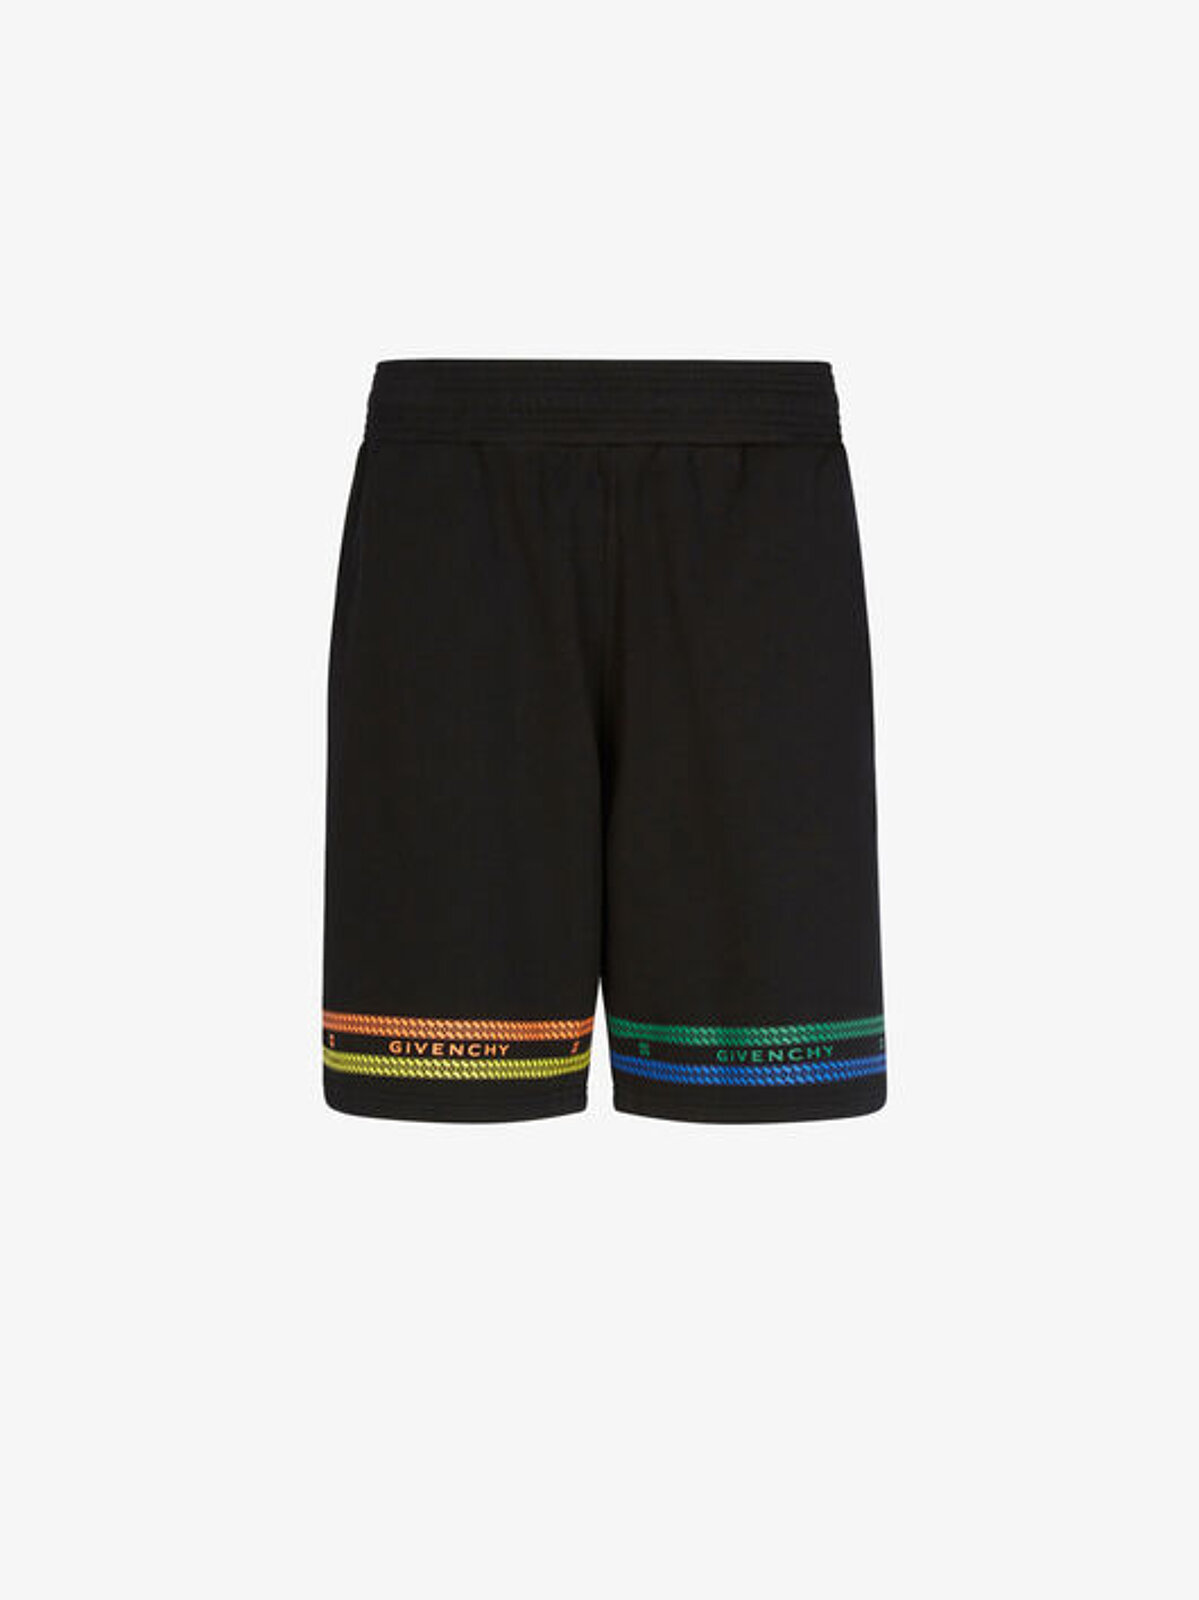 Bermuda shorts with multicolored GIVENCHY Chaine print - Givenchy